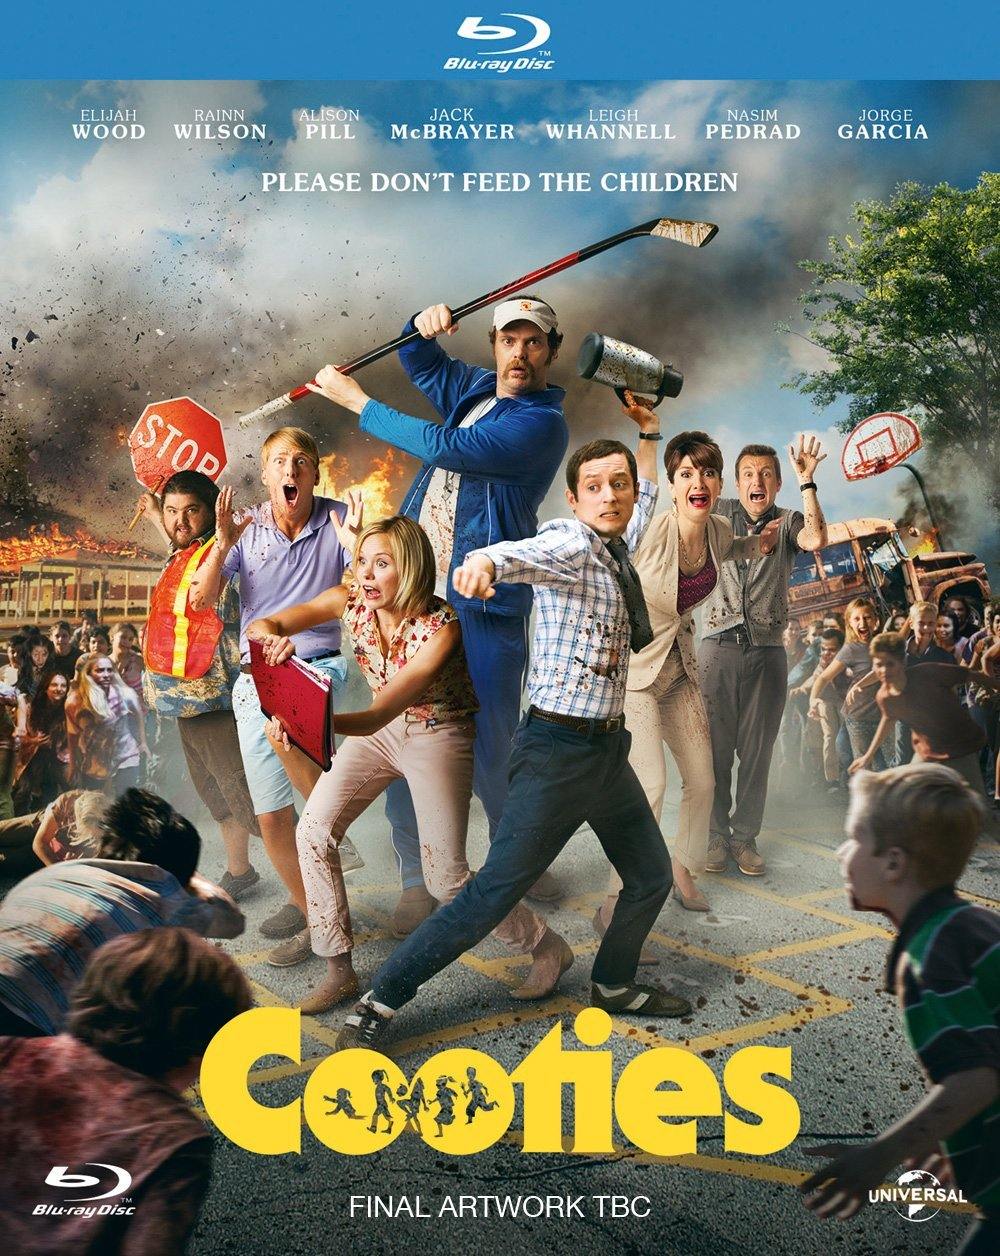 Cooties Blu-ray review: Frodo fights the undead